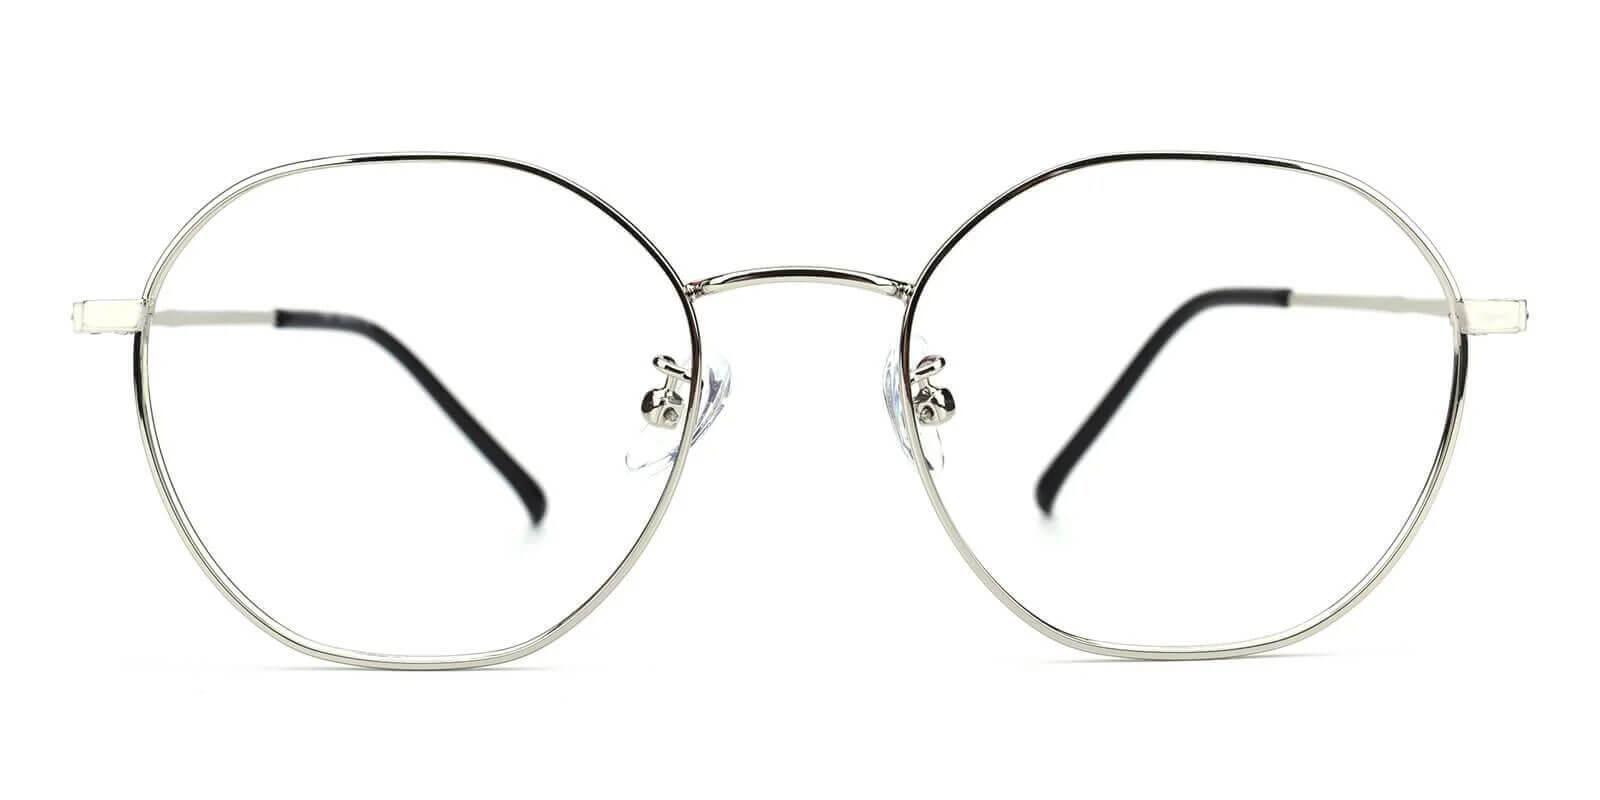 Singapore Silver Metal Eyeglasses , Lightweight , NosePads Frames from ABBE Glasses